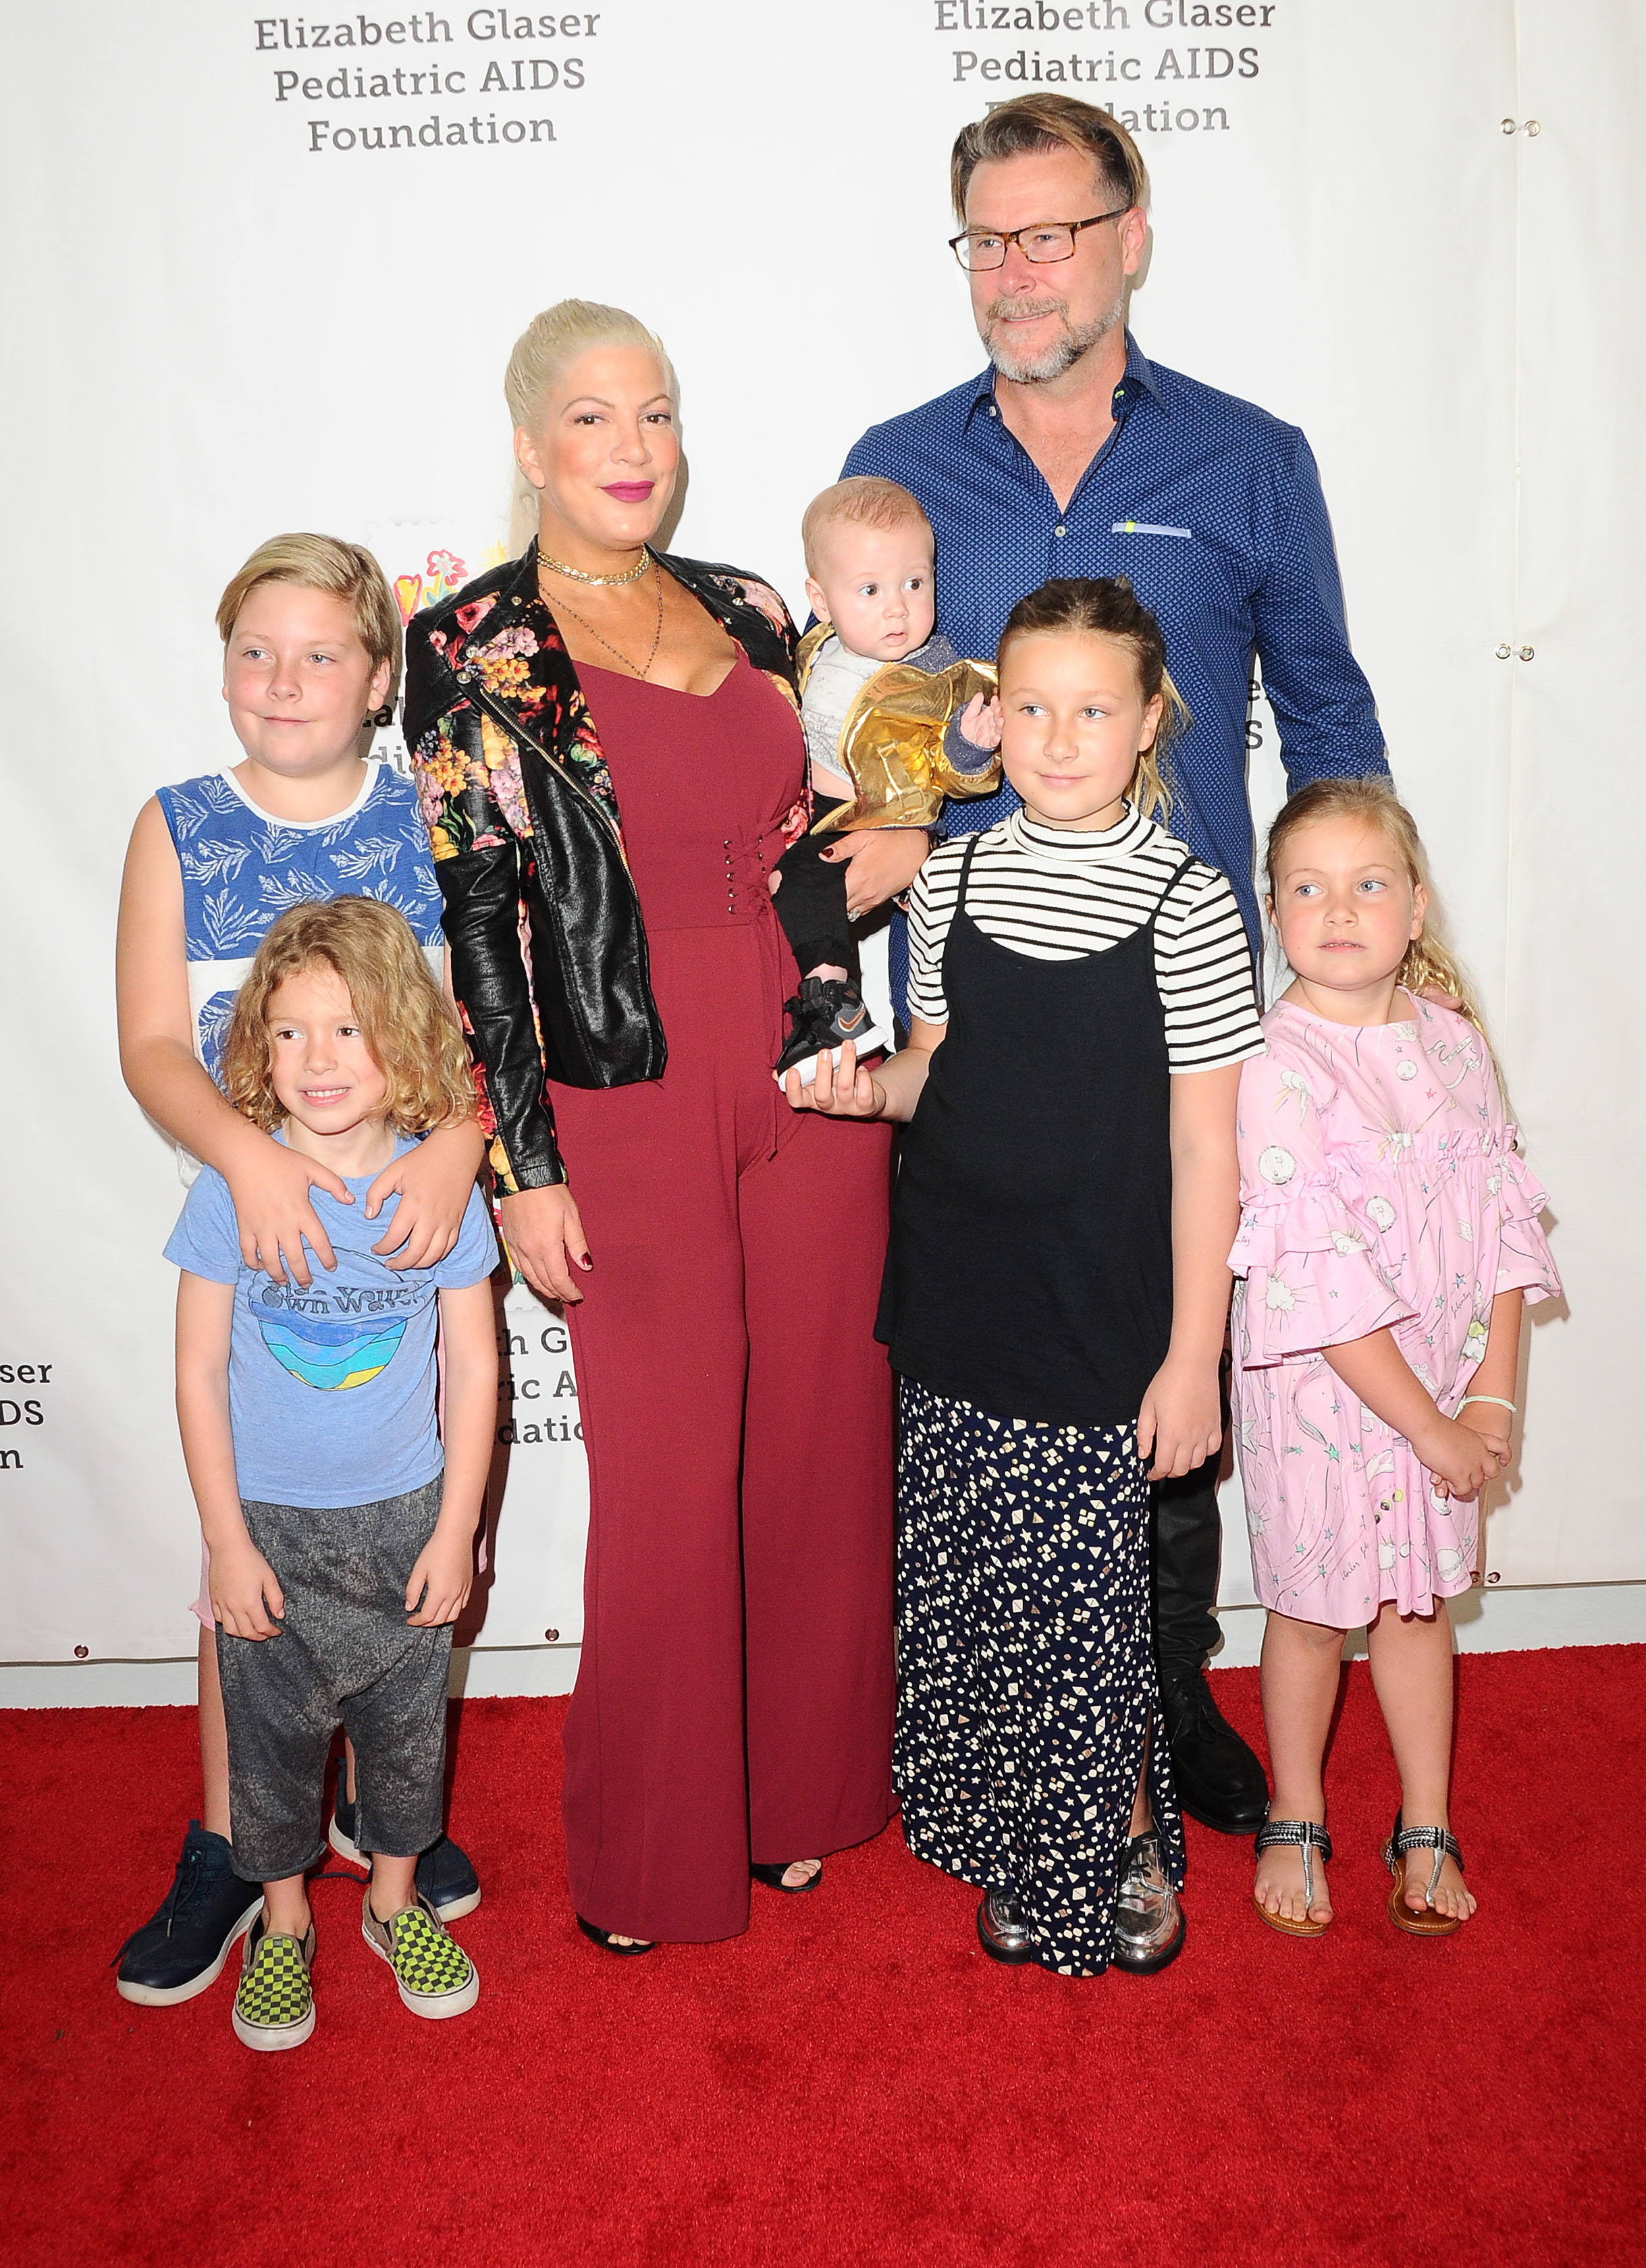 Tori Spelling says her youngest child represents 'the rebirth' of her marriage